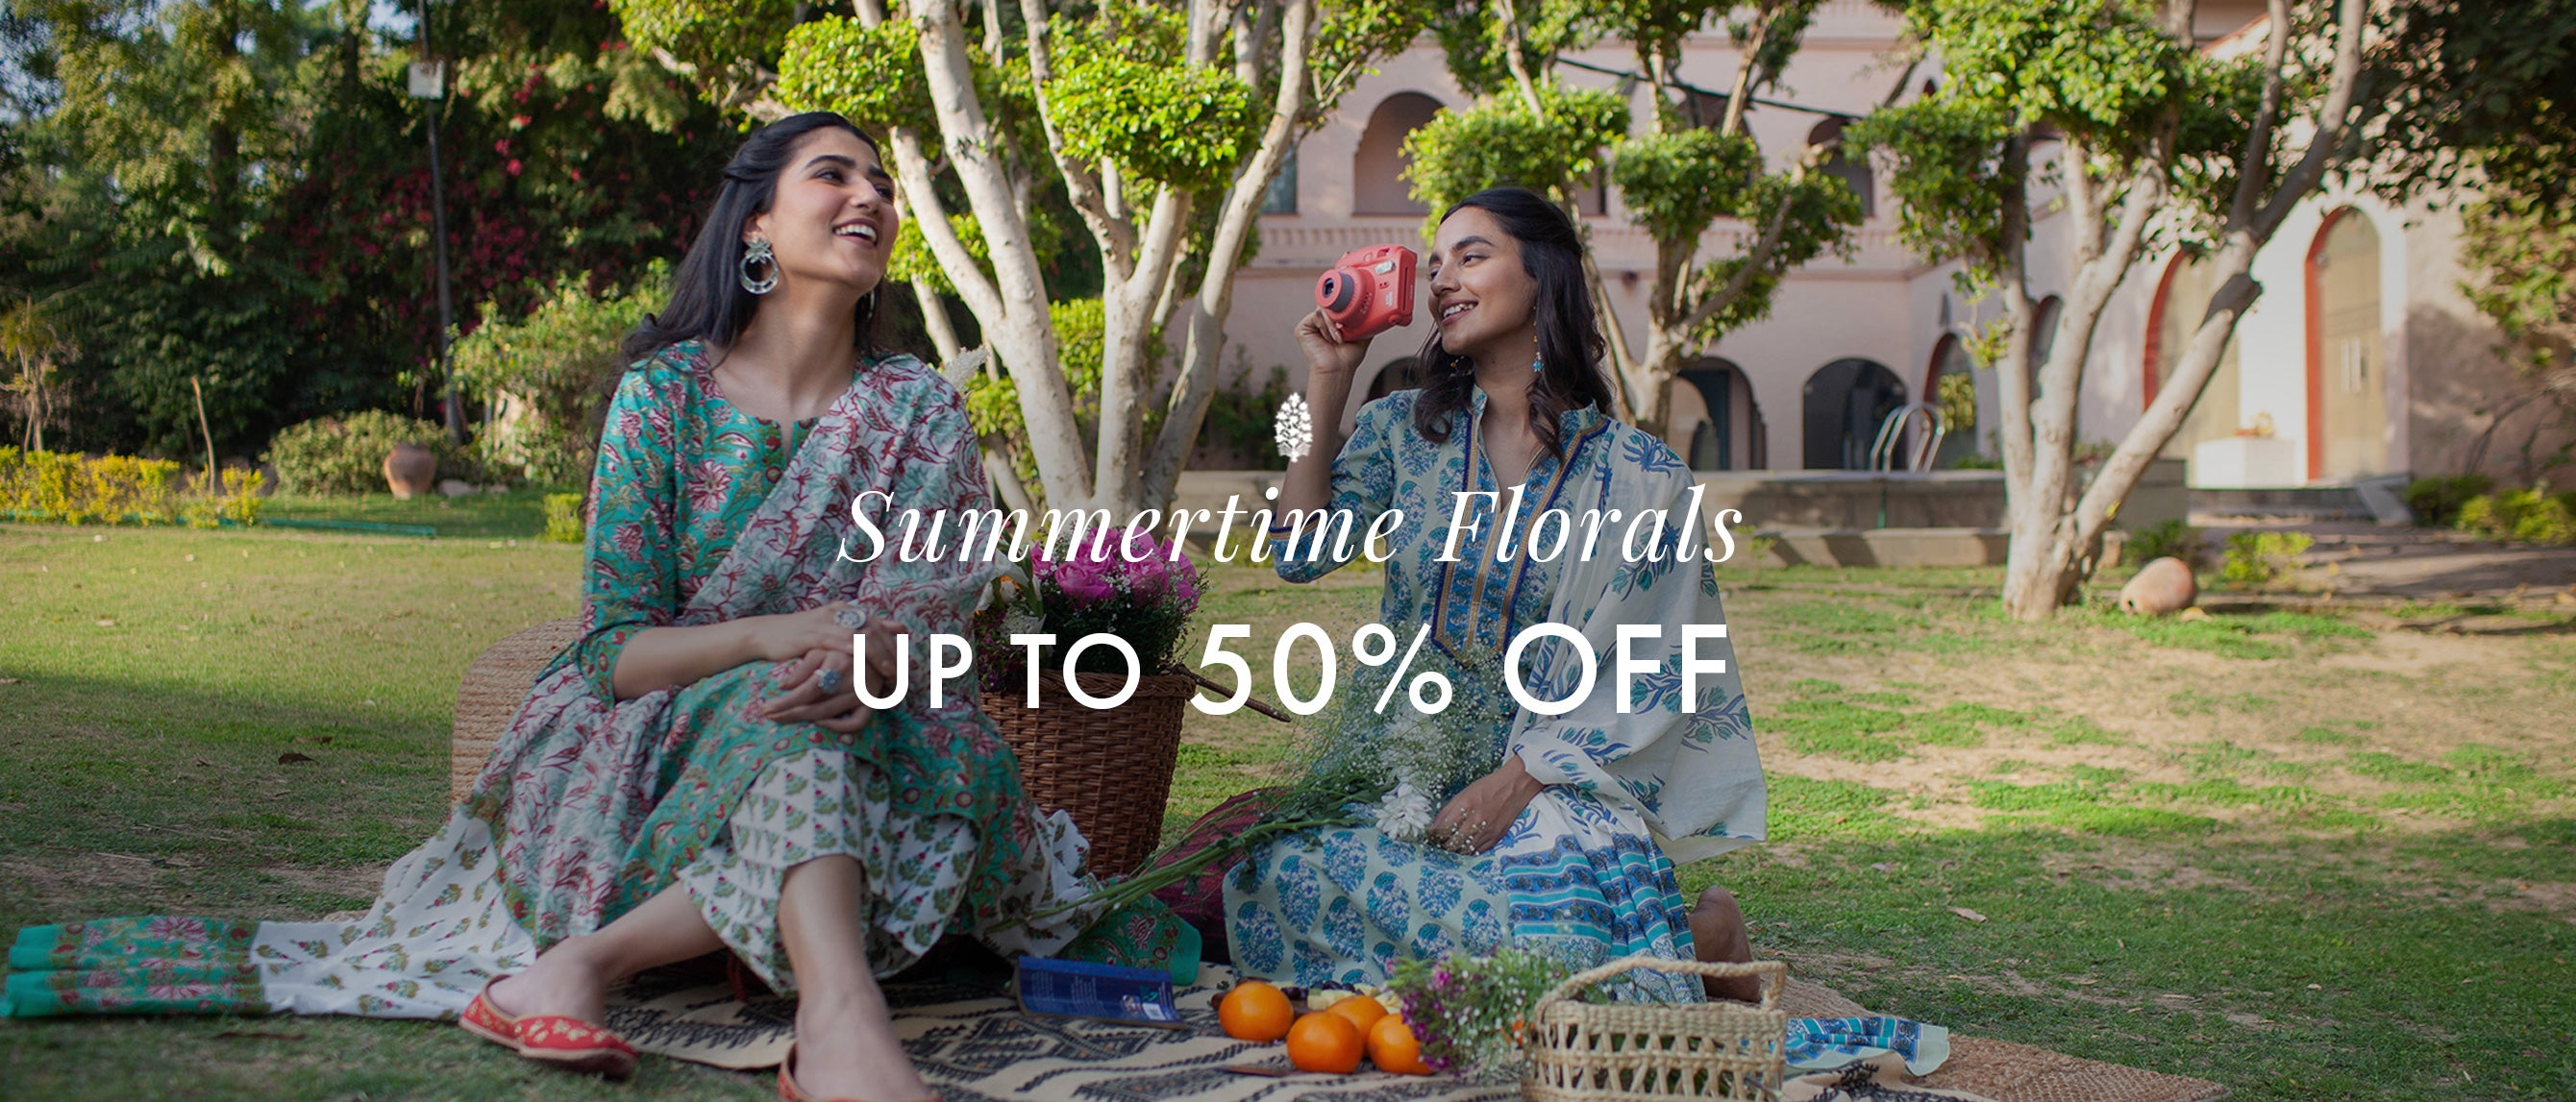 Summertime Florals up to 50% Off